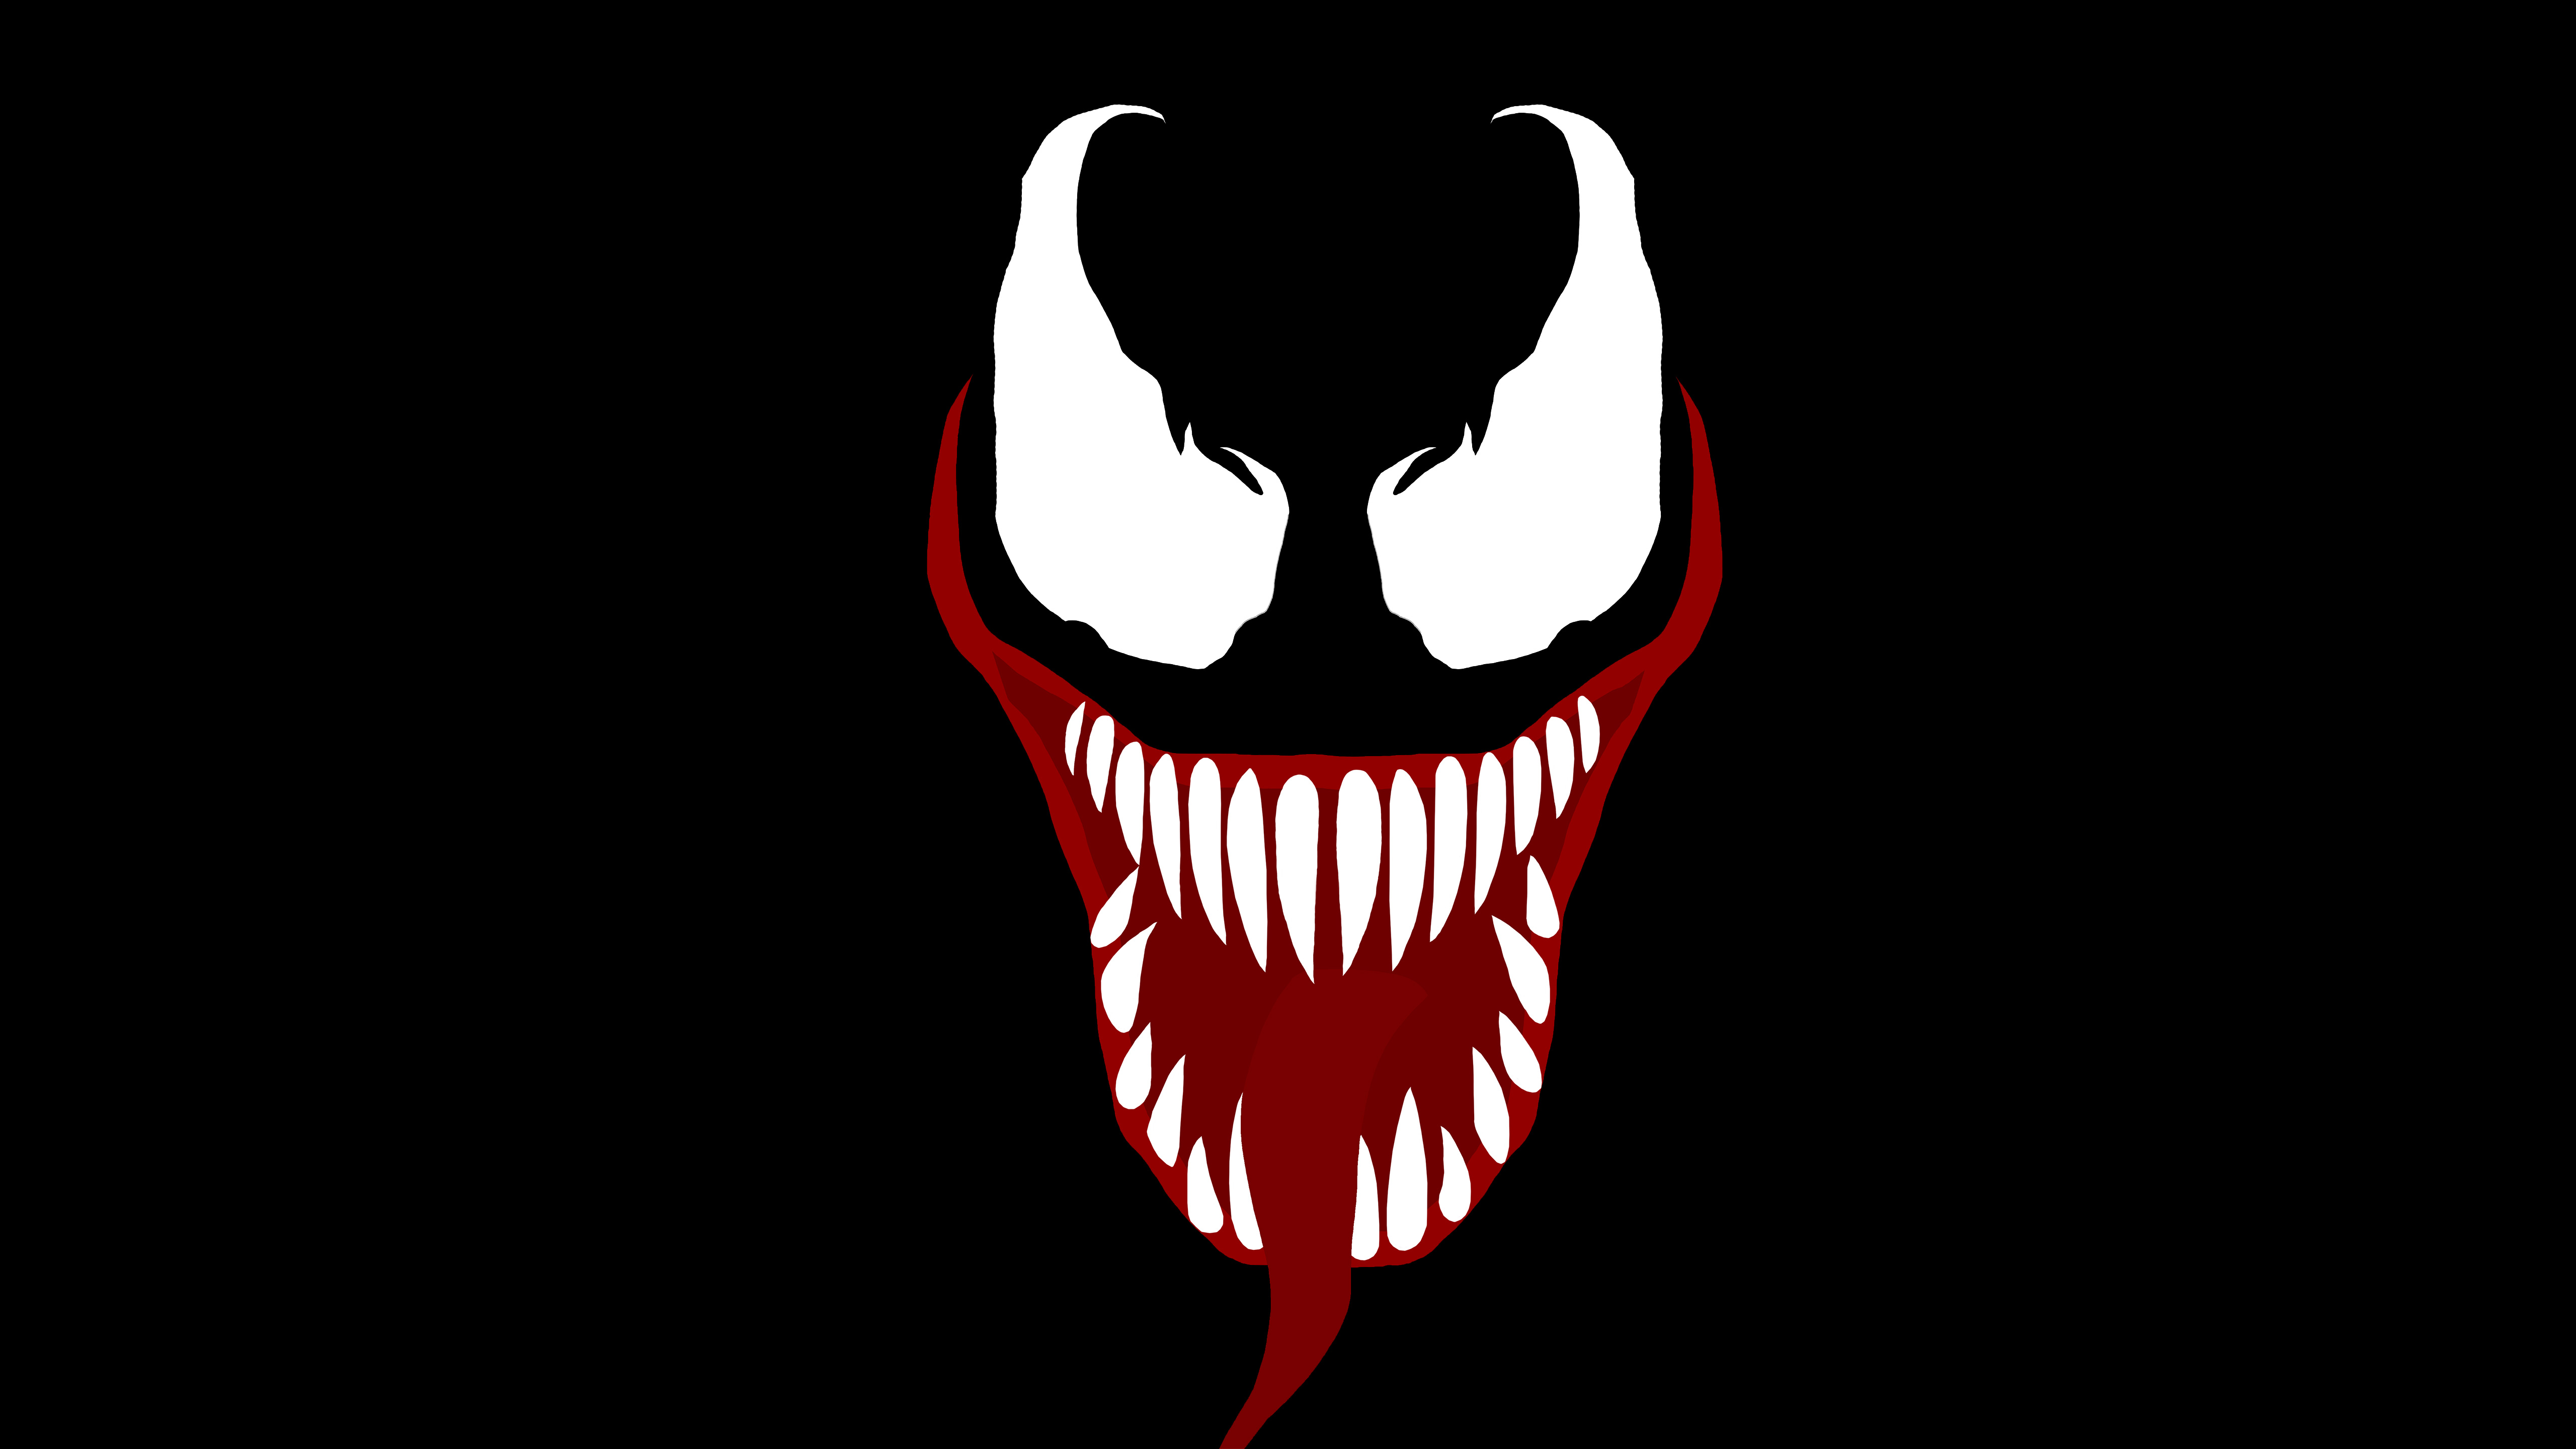 venom movie face hd movies 4k wallpapers images